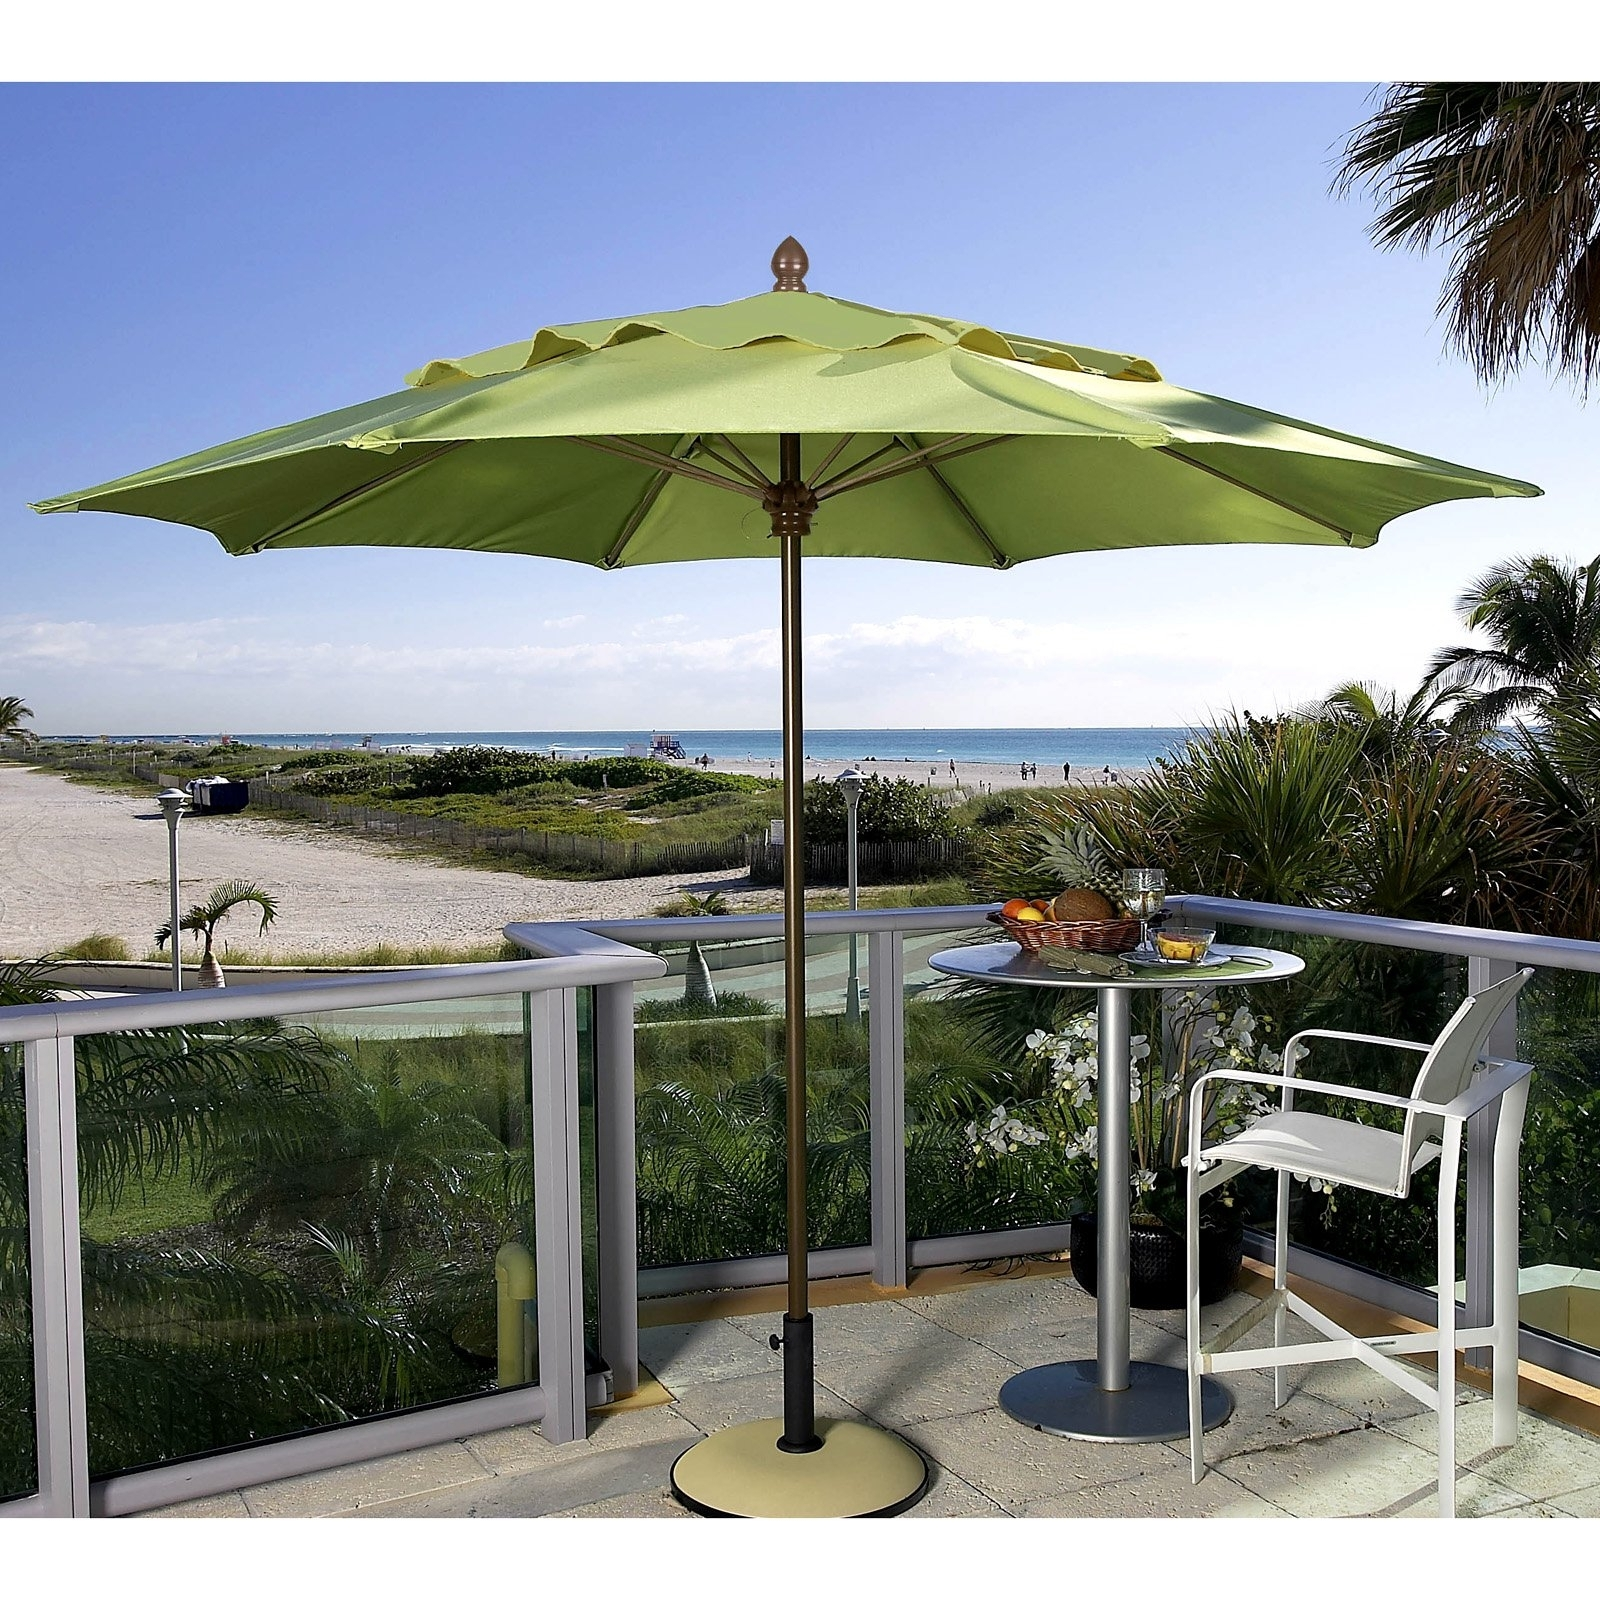 Trendy Oversized Patio Umbrellas With Regard To Small Patio Umbrellas Sale (View 13 of 20)